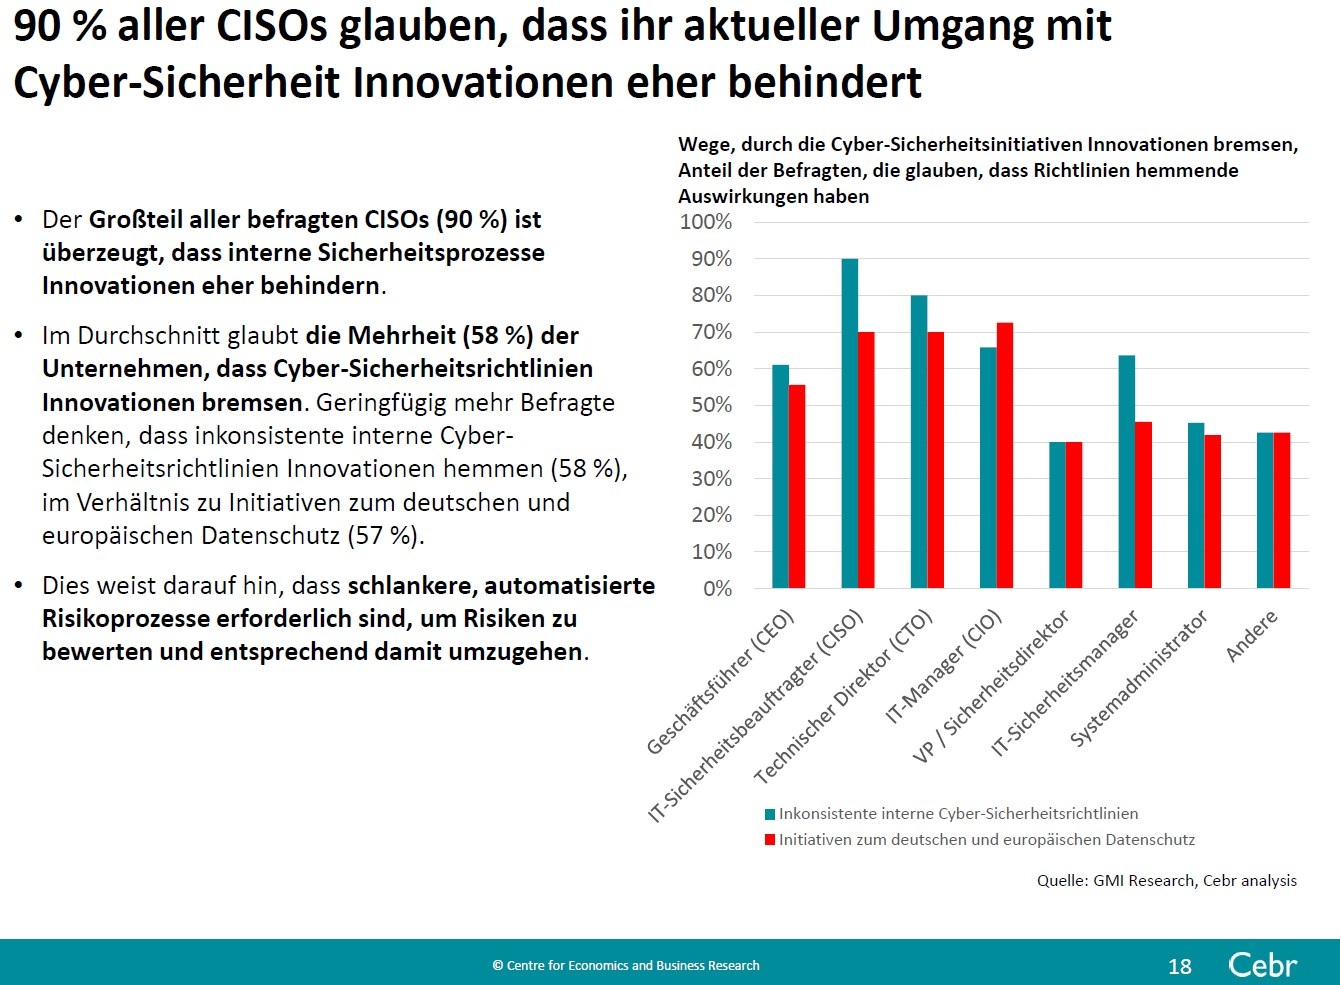 grafik cebr veracode cybersicherheit innovation